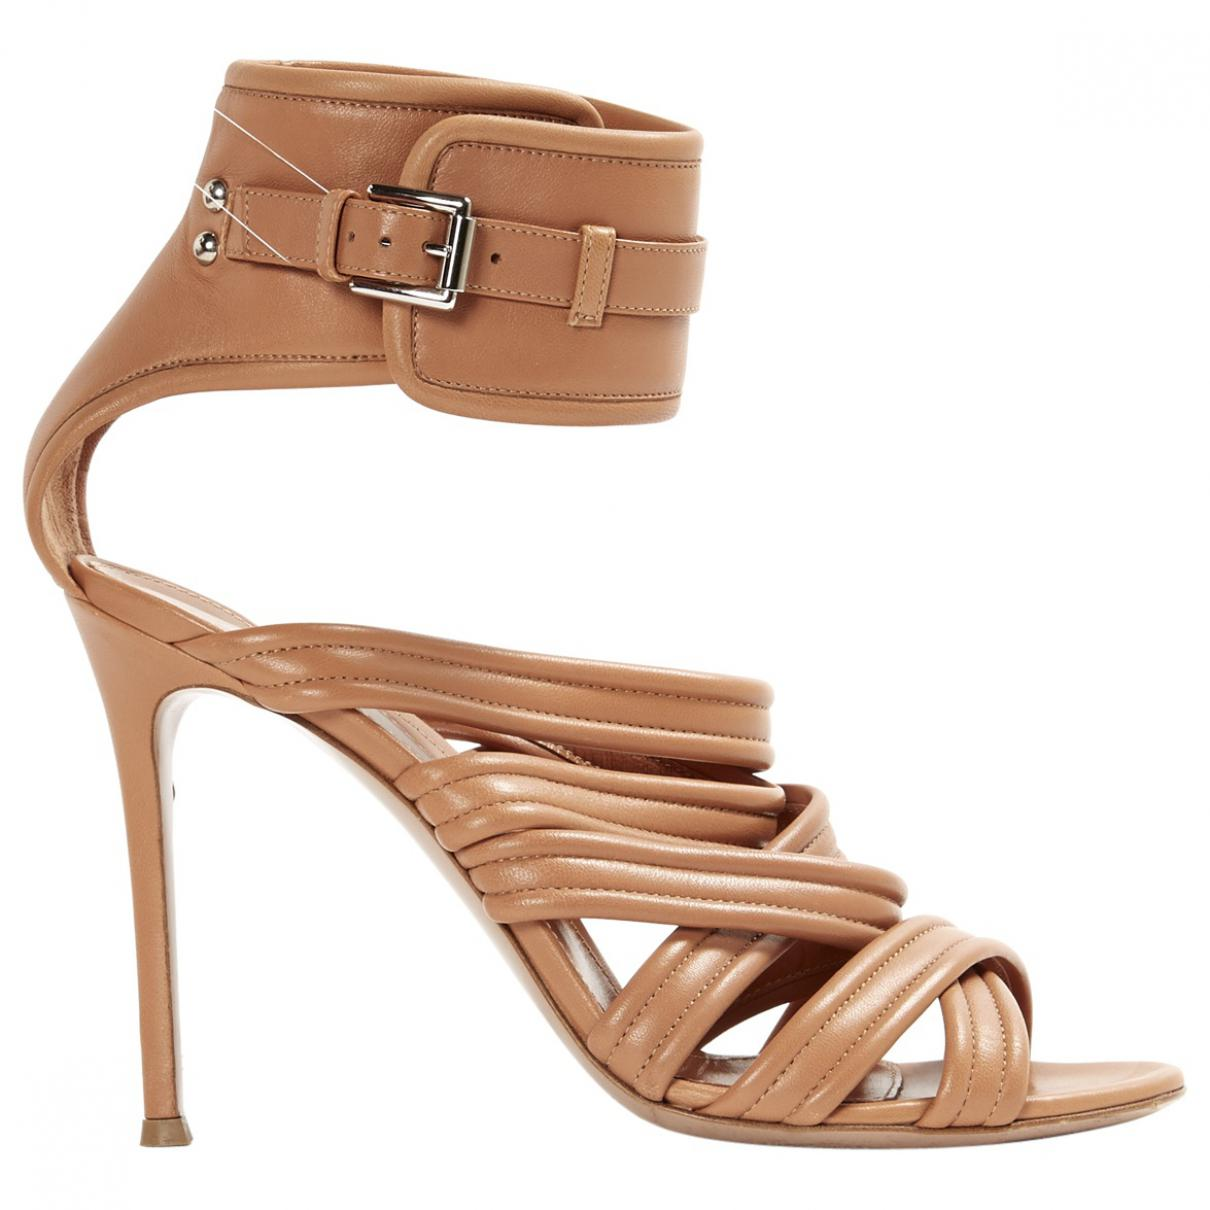 Pre-owned - CANVAS SANDALS Gianvito Rossi 6T2uvpunwb